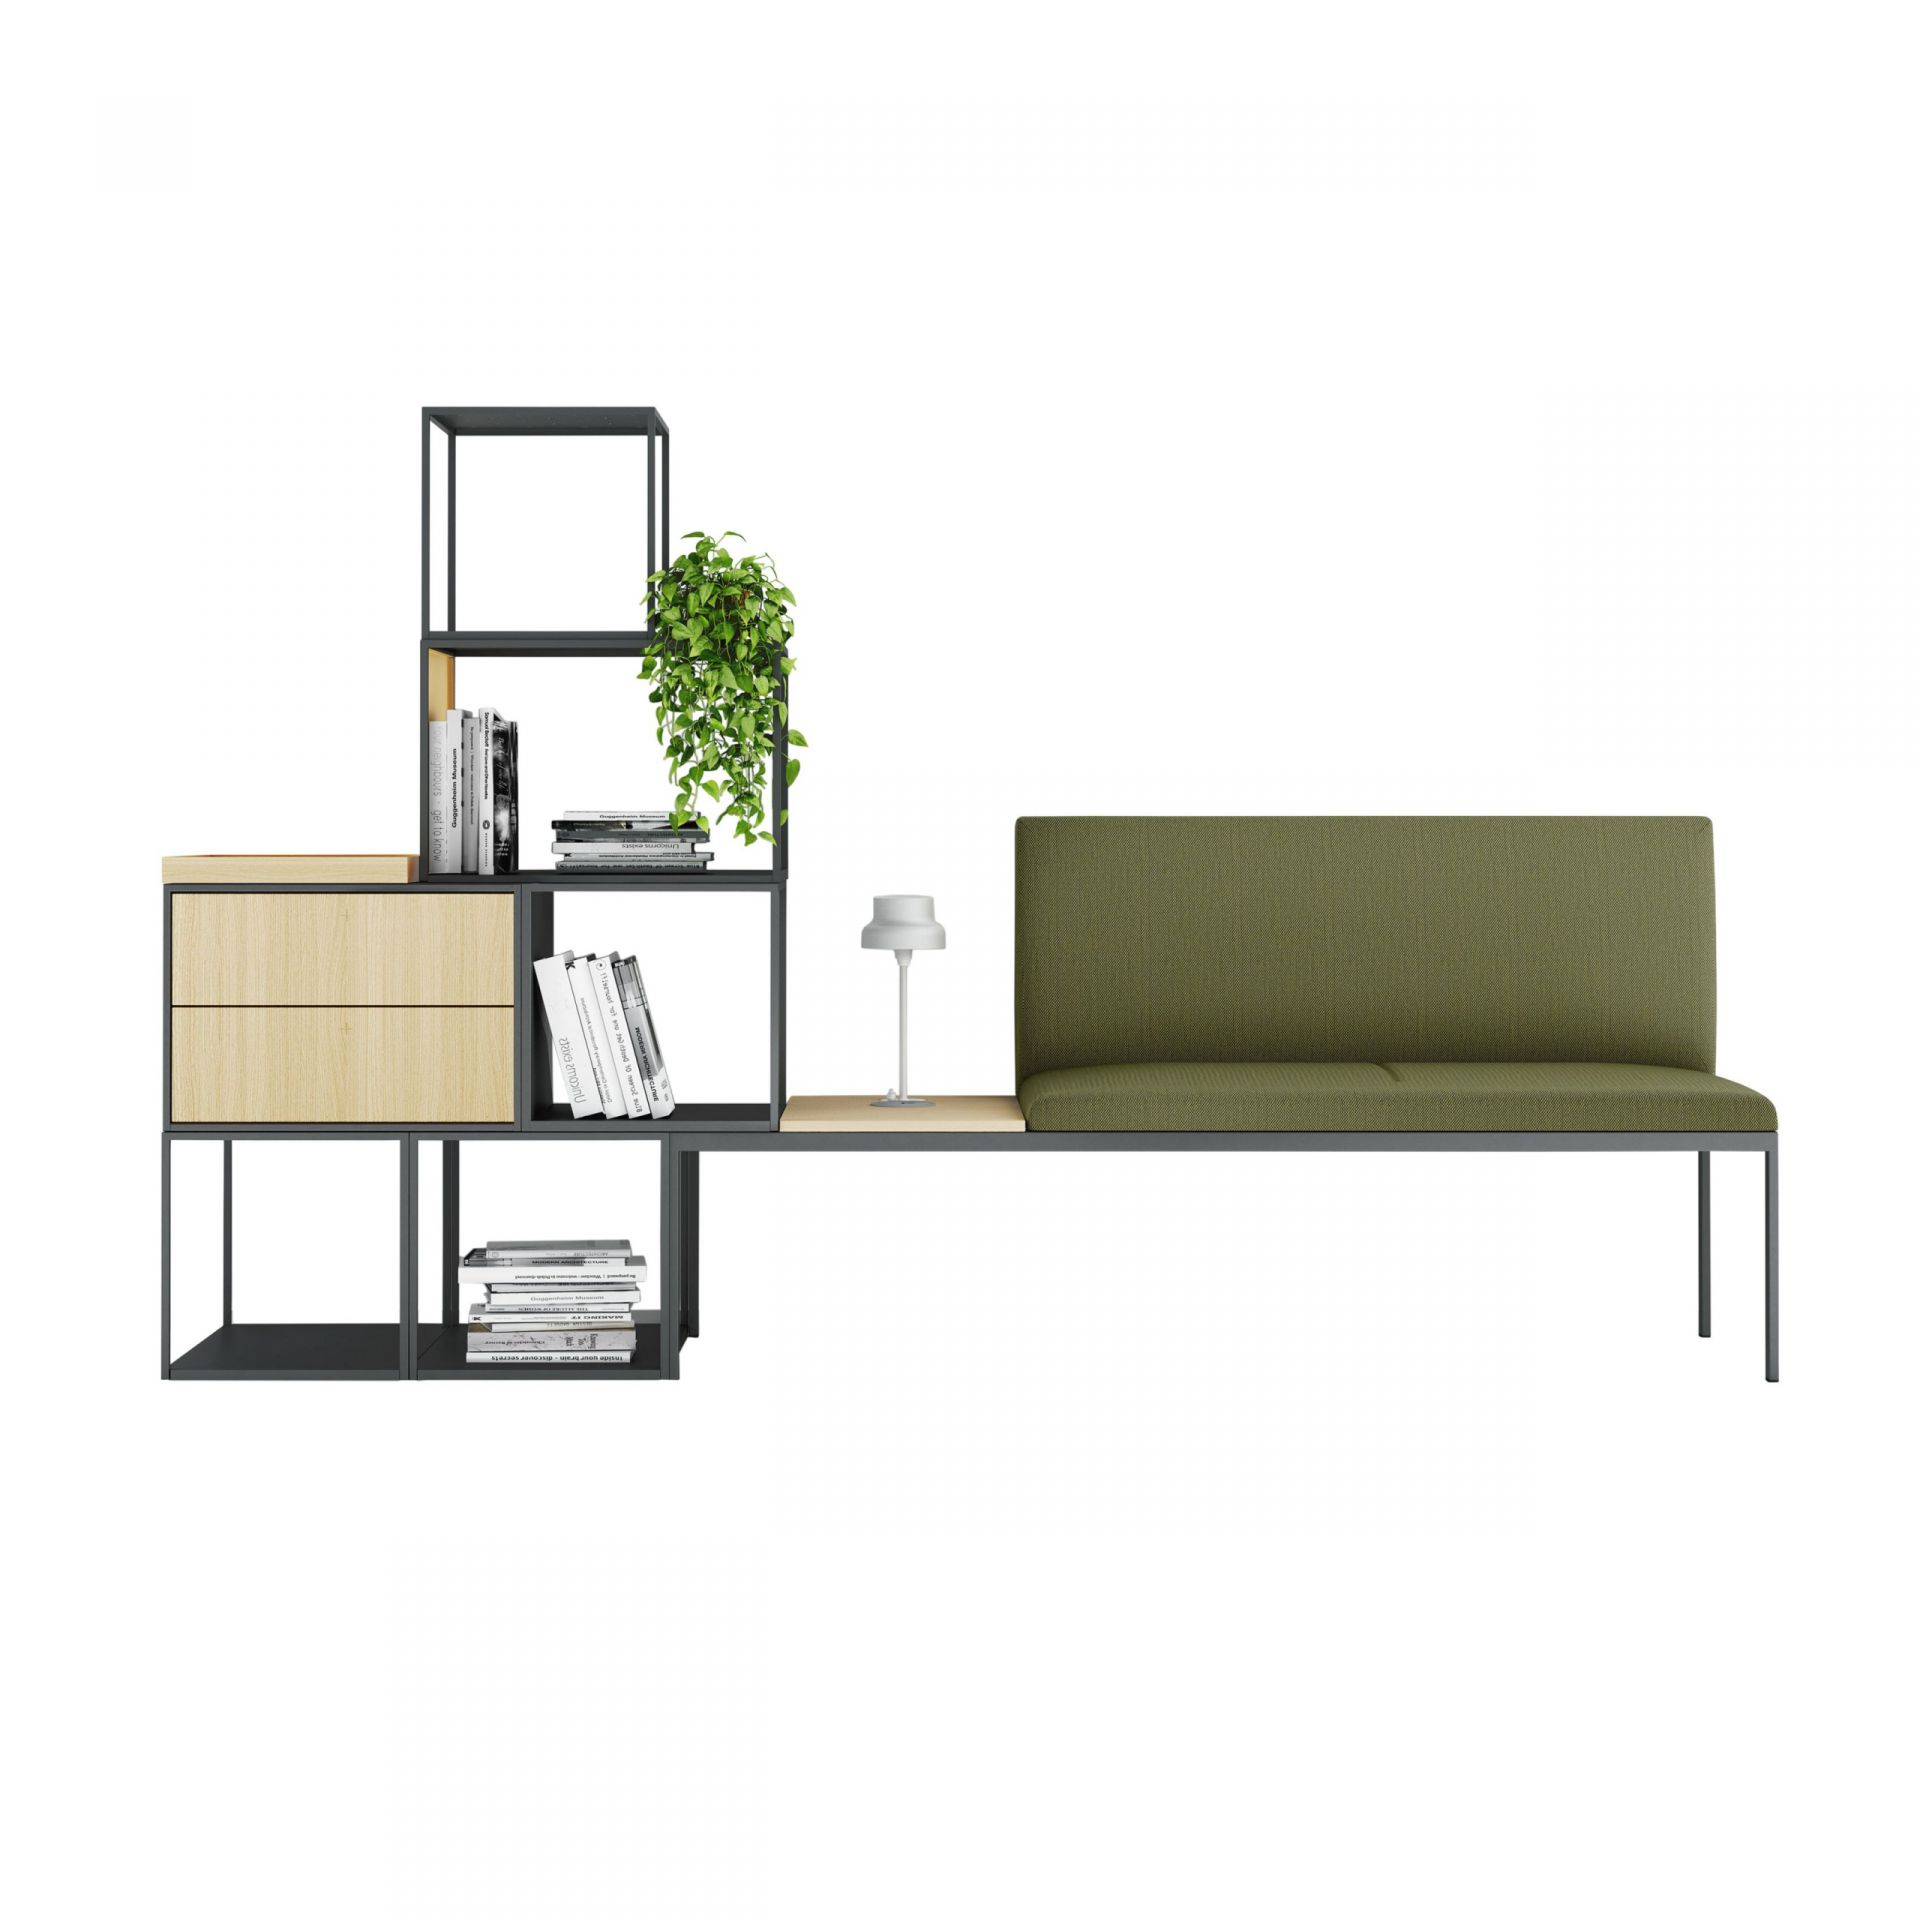 Create Seating Buildable modules: seating, storage and room-in-room